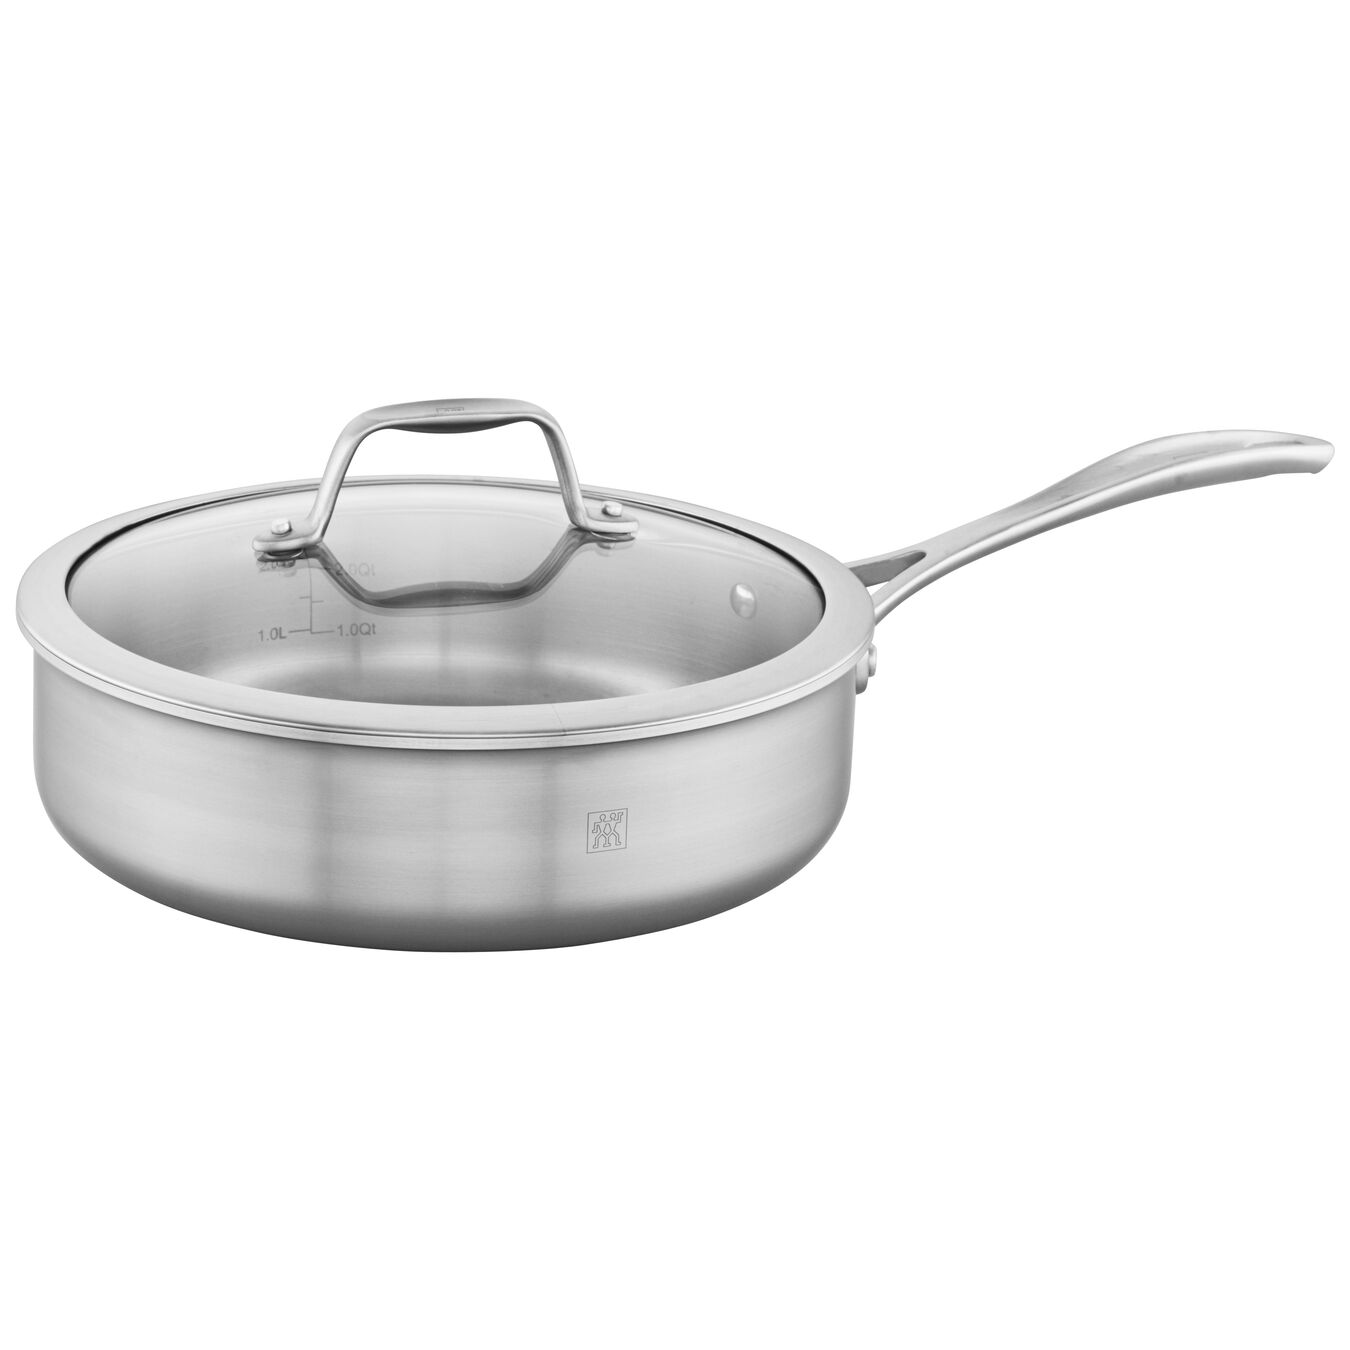 3-ply 3-qt Stainless Steel Saute Pan,,large 1